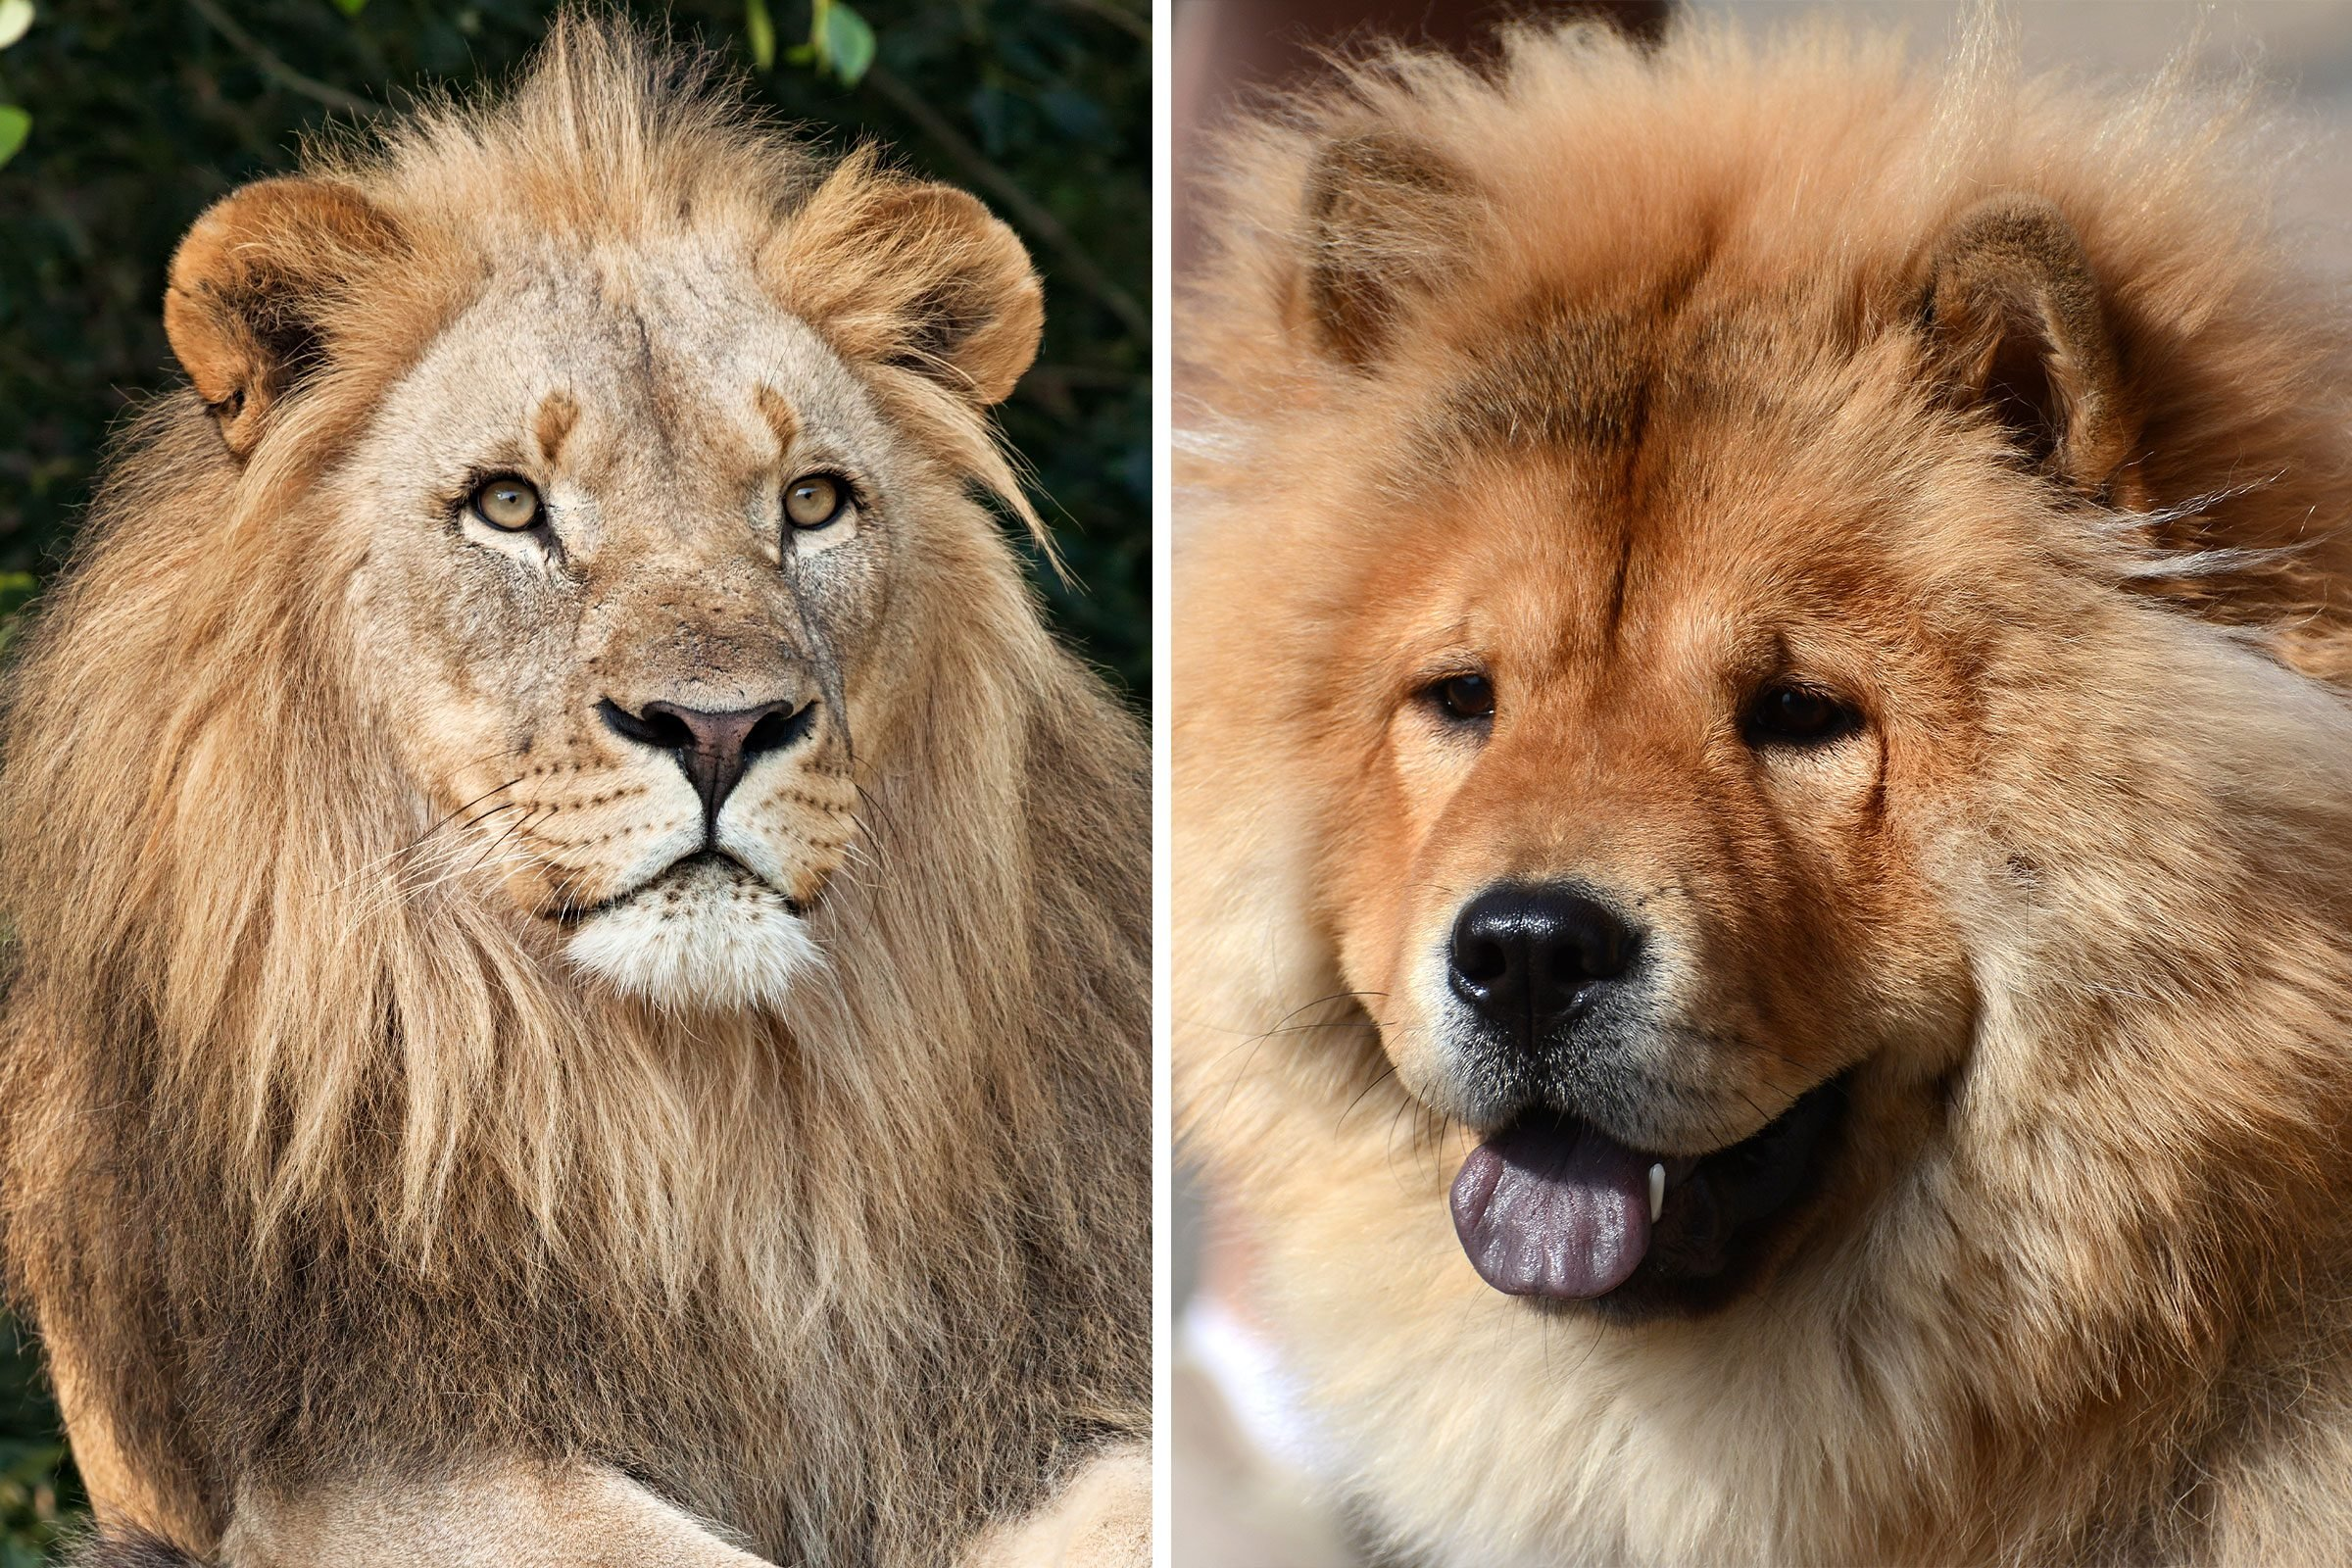 Fluffy dog compared to a lion